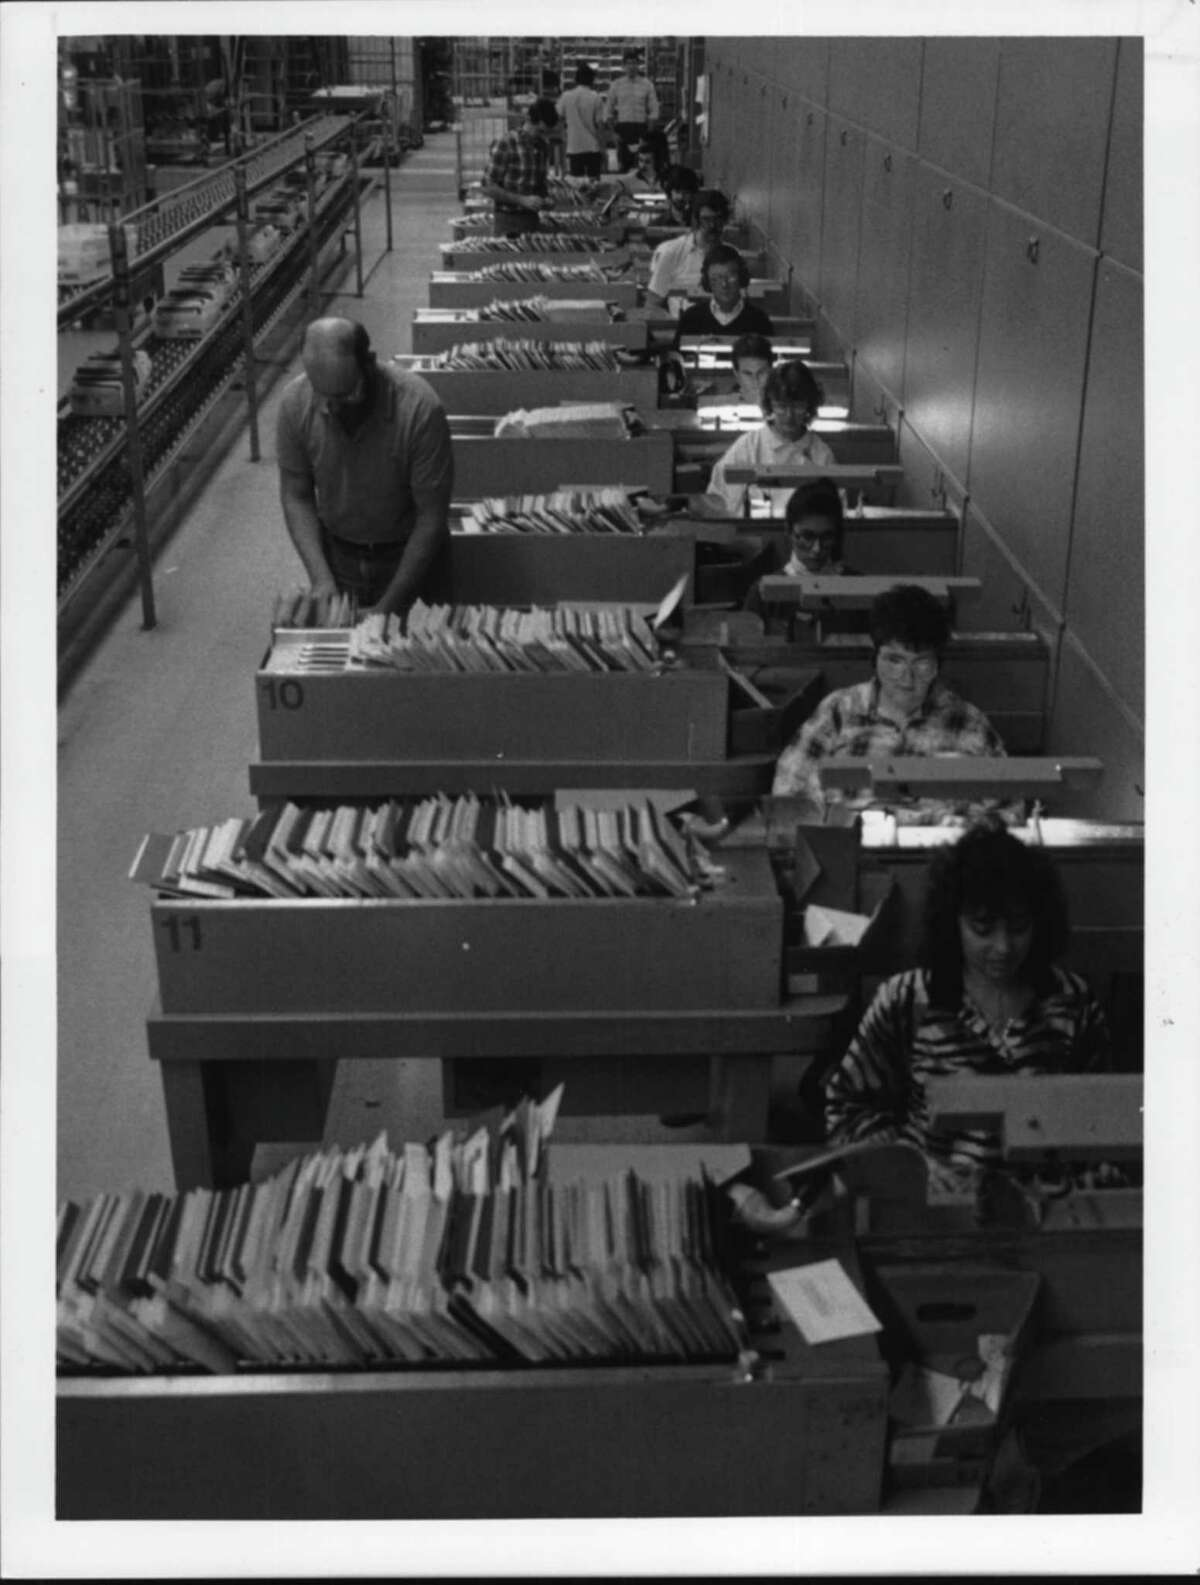 US Postal Service mail facility, Karner Road, Colonie, New York - postal workers sort flood of mail. December 21, 1987 (Jack Madigan/Times Union Archive)